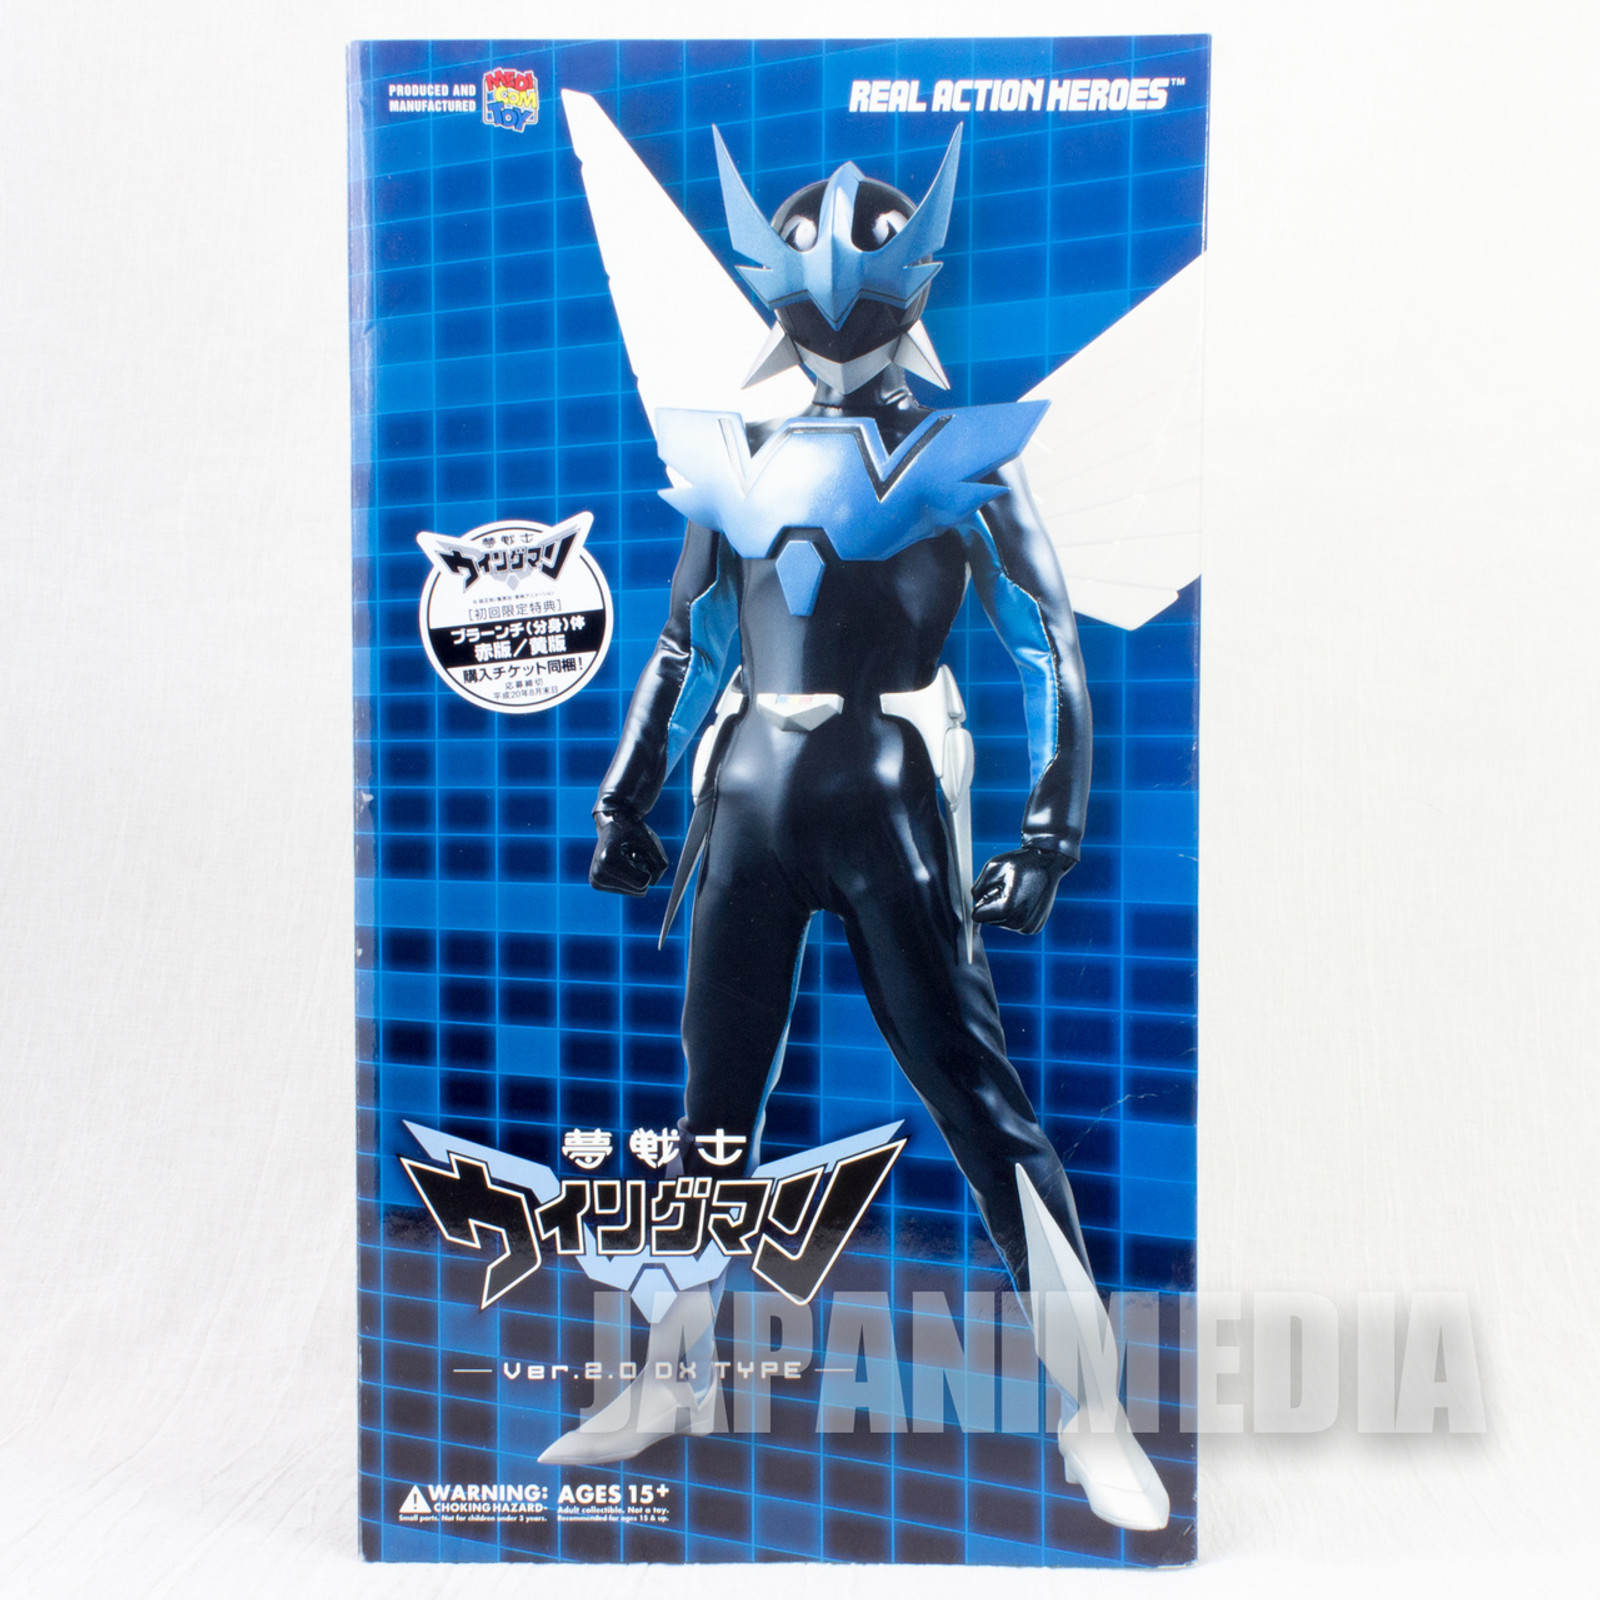 WINGMAN Real Action Heroes RAH Figure Ver.2.0 DX Type Medicom Toy JAPAN ANIME